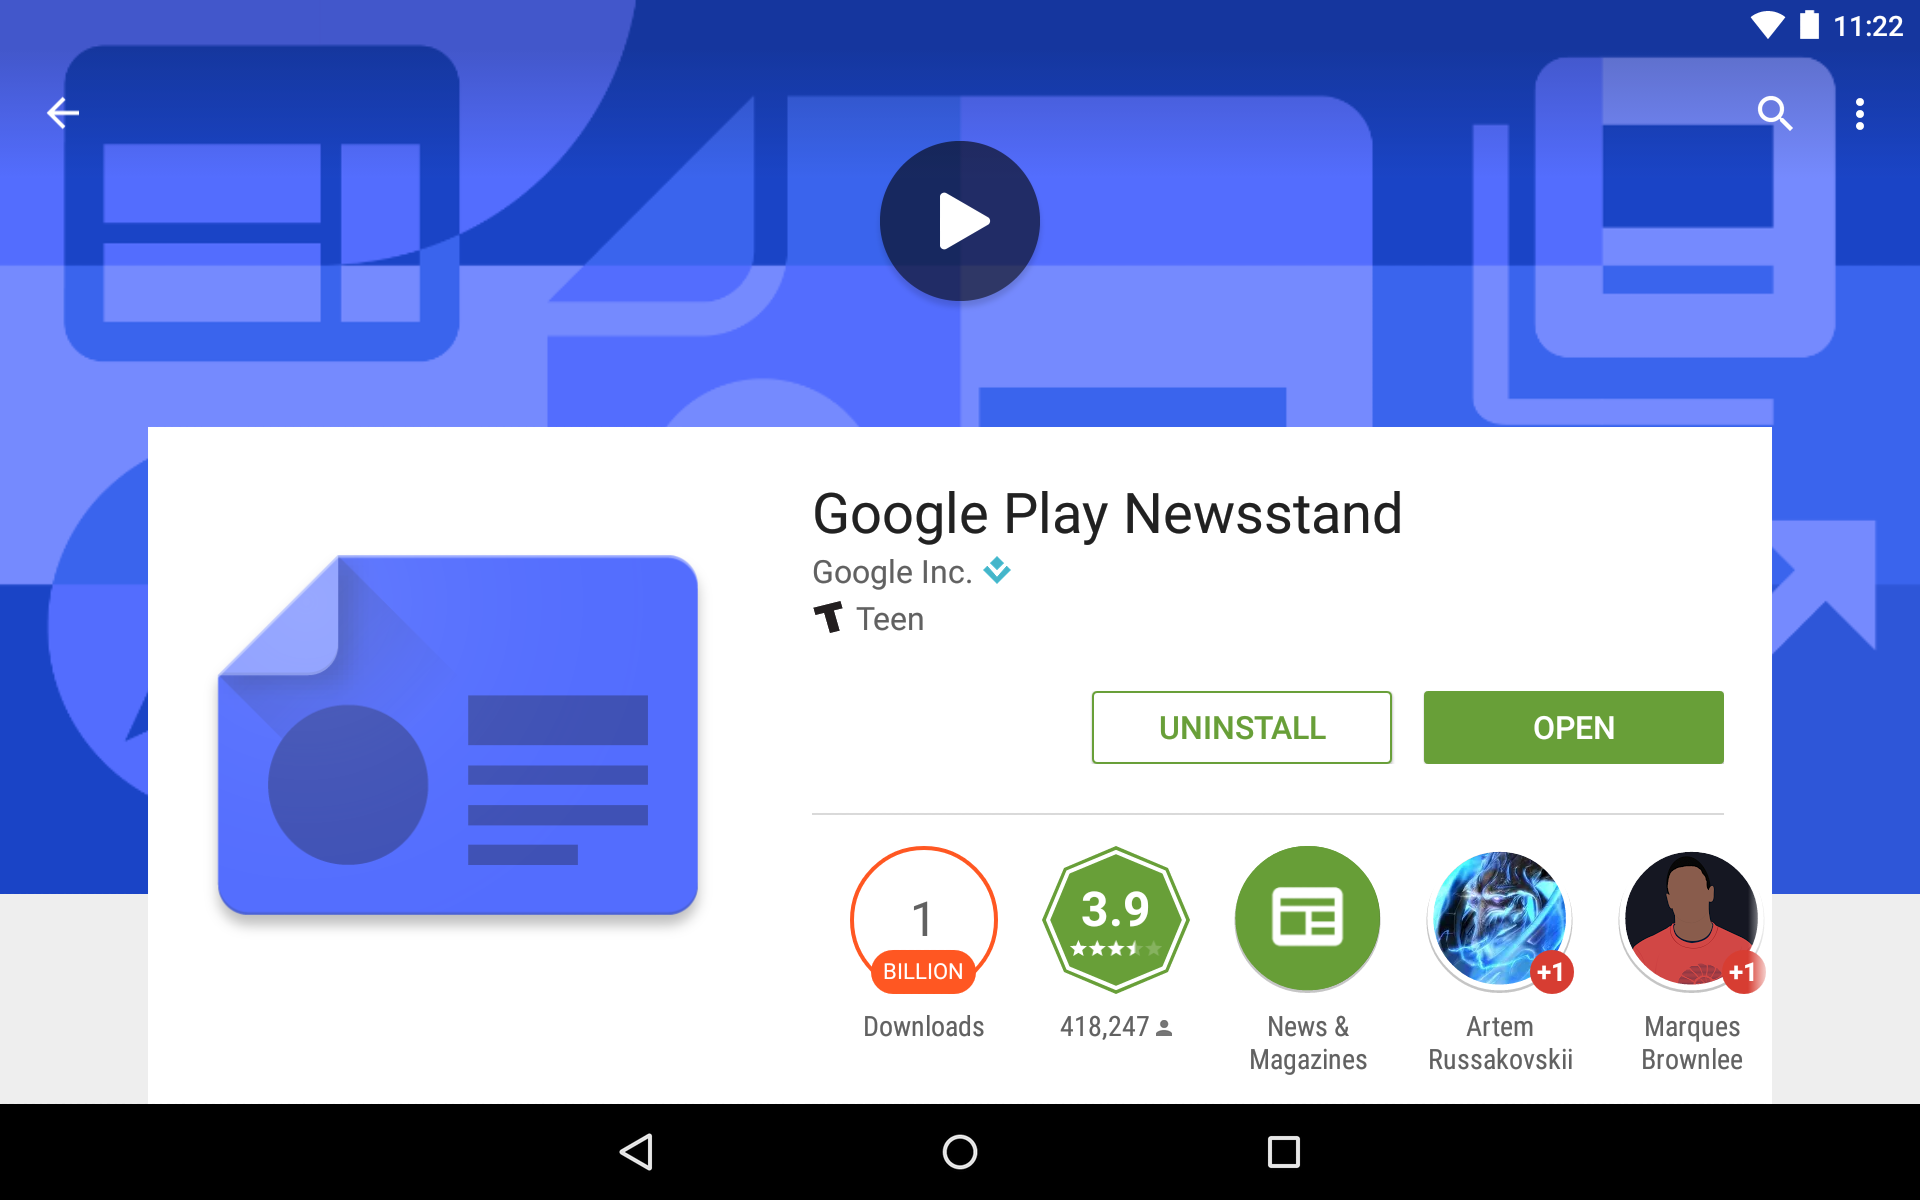 Google Play Newsstand Becomes 16th Android App To Reach 1